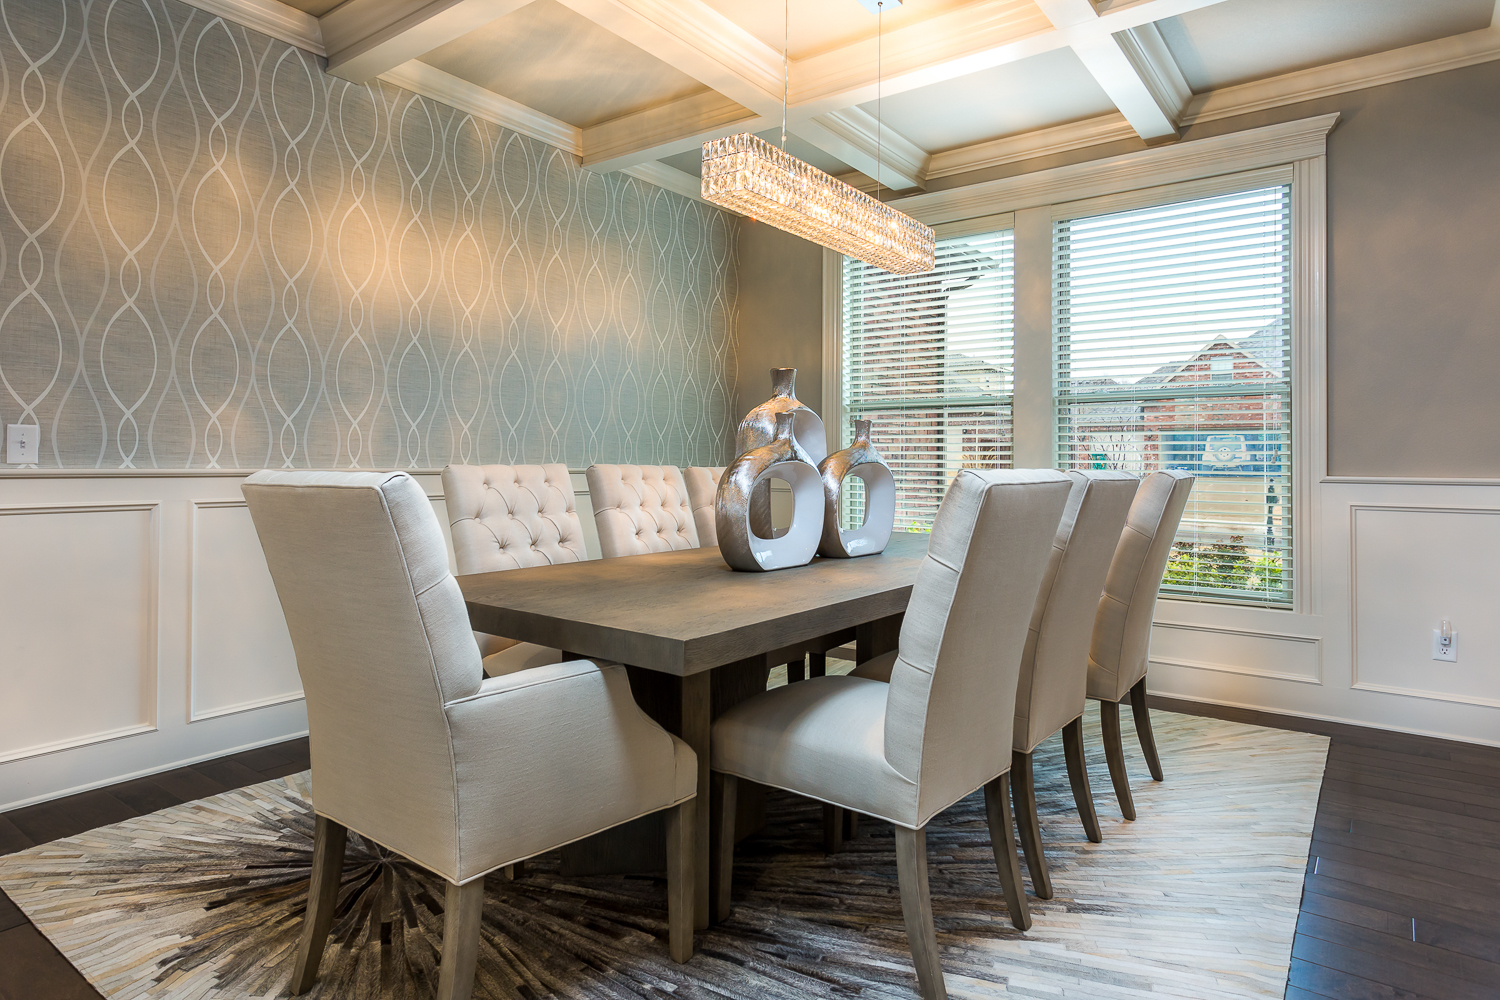 Dining Room real estate photo of home in Quailridge community of